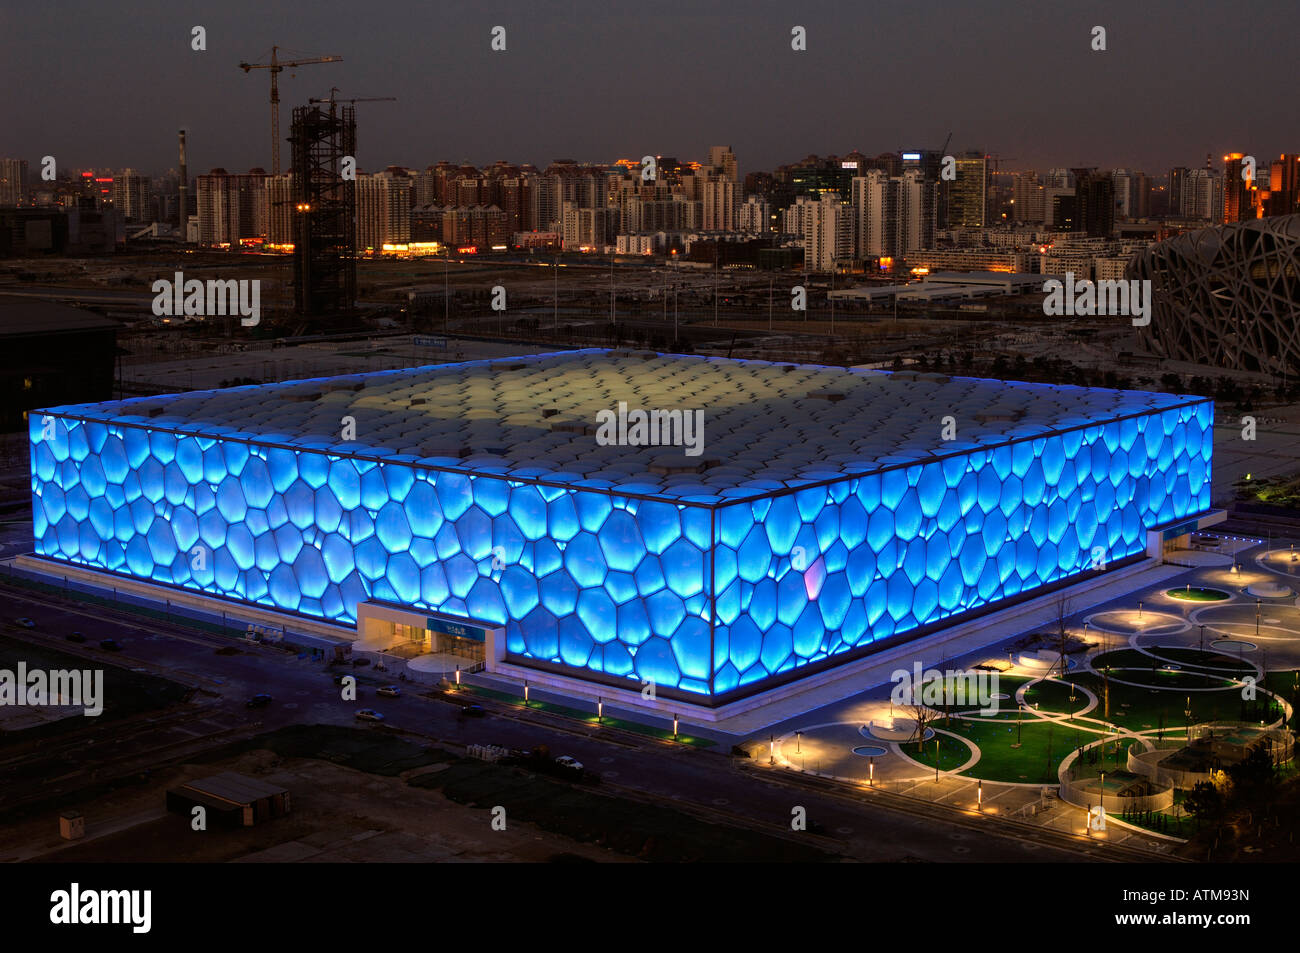 The Beijing National Aquatics Center  for the Beijing 2008 Olympic Games.  29-Feb-2008 Stock Photo